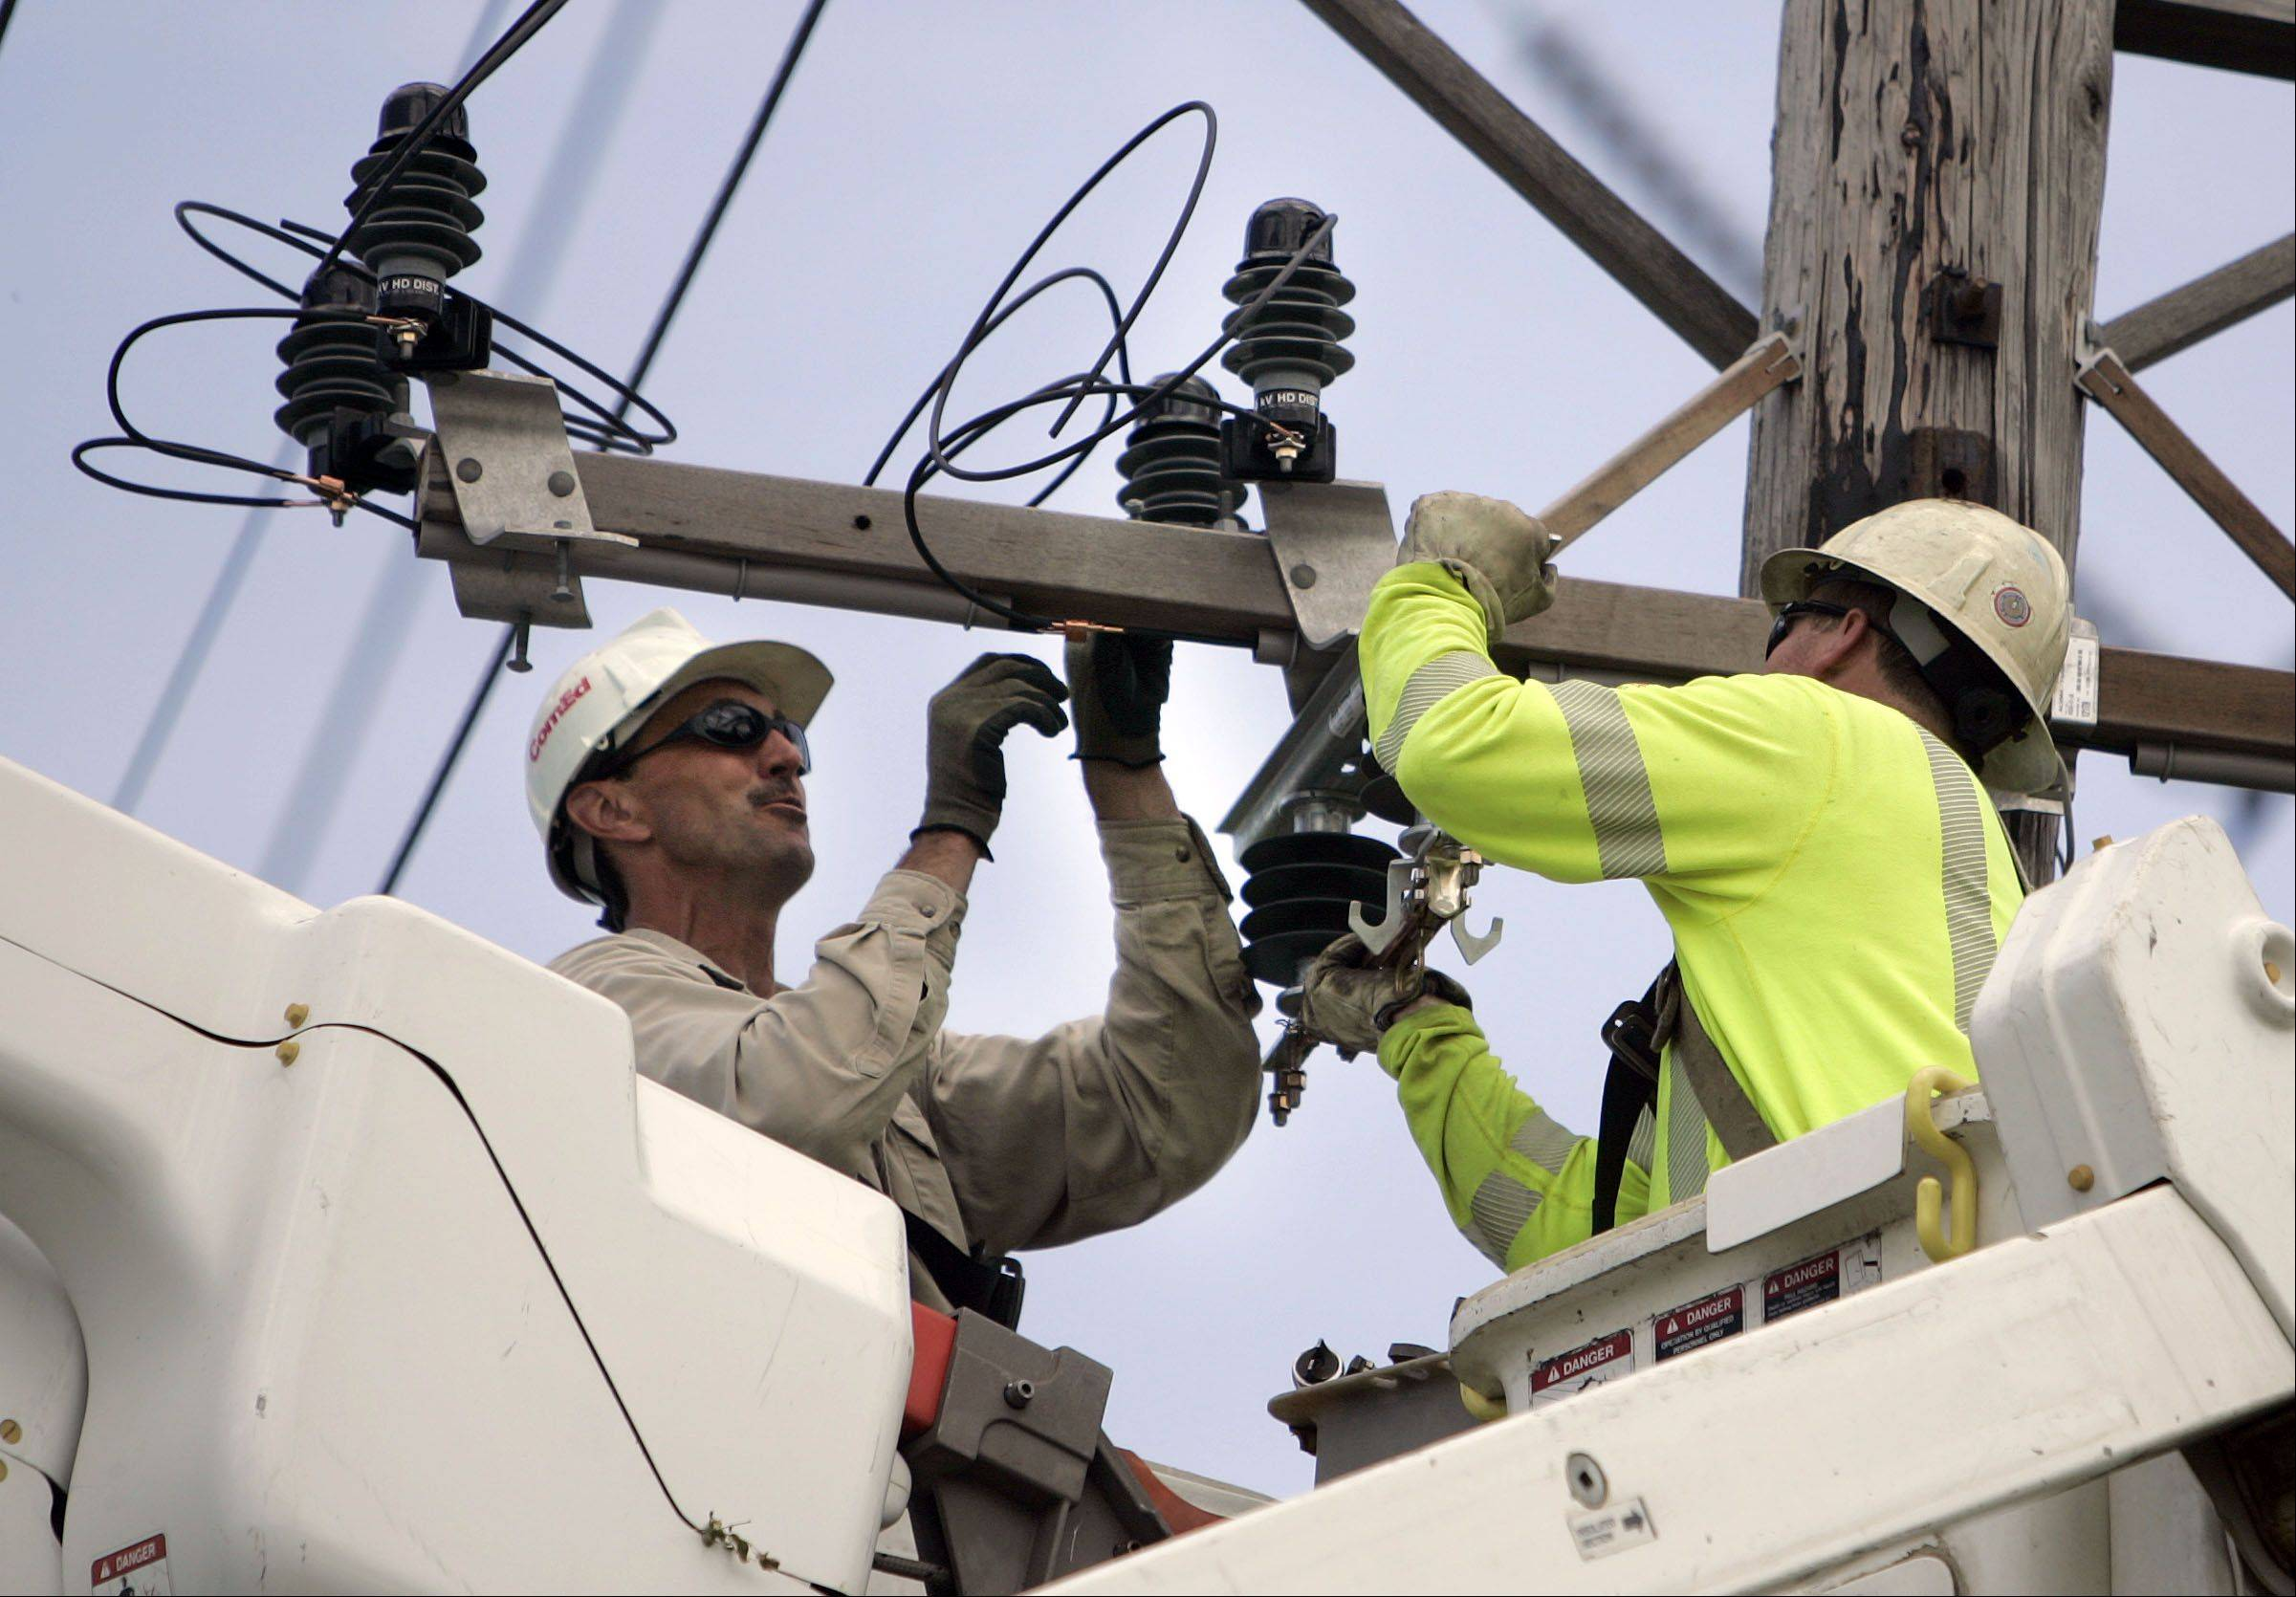 ComEd linemen John Grandfield, left, and Rob Pait work on a pole in Mundelein. Even though other companies are selling electricity to consumers, ComEd will still own and maintain the lines.